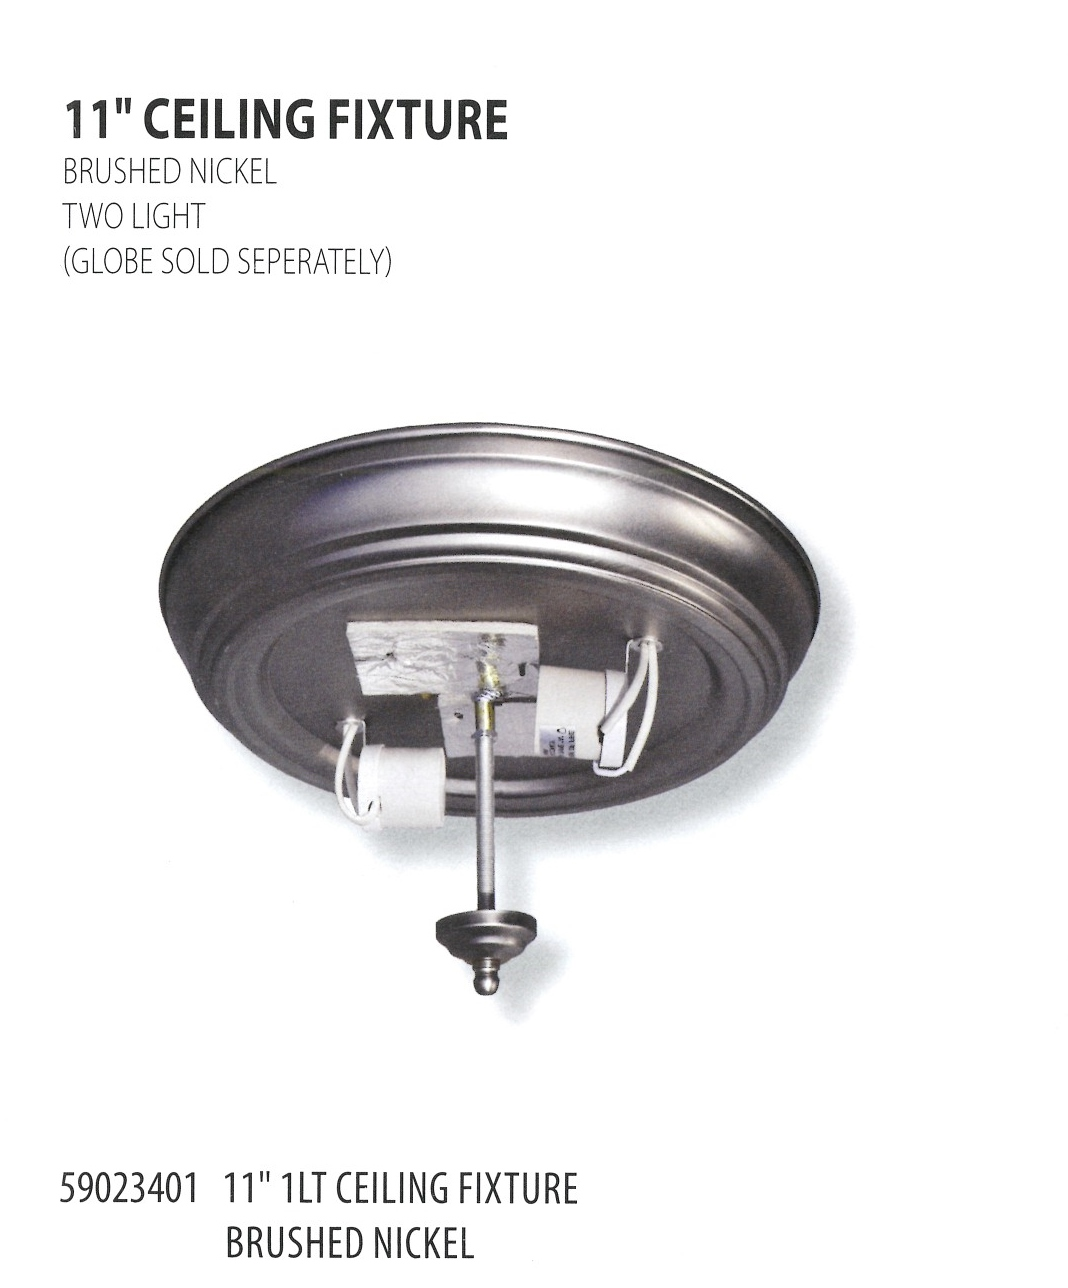 59023401 11INCH CEILING FIXTURE